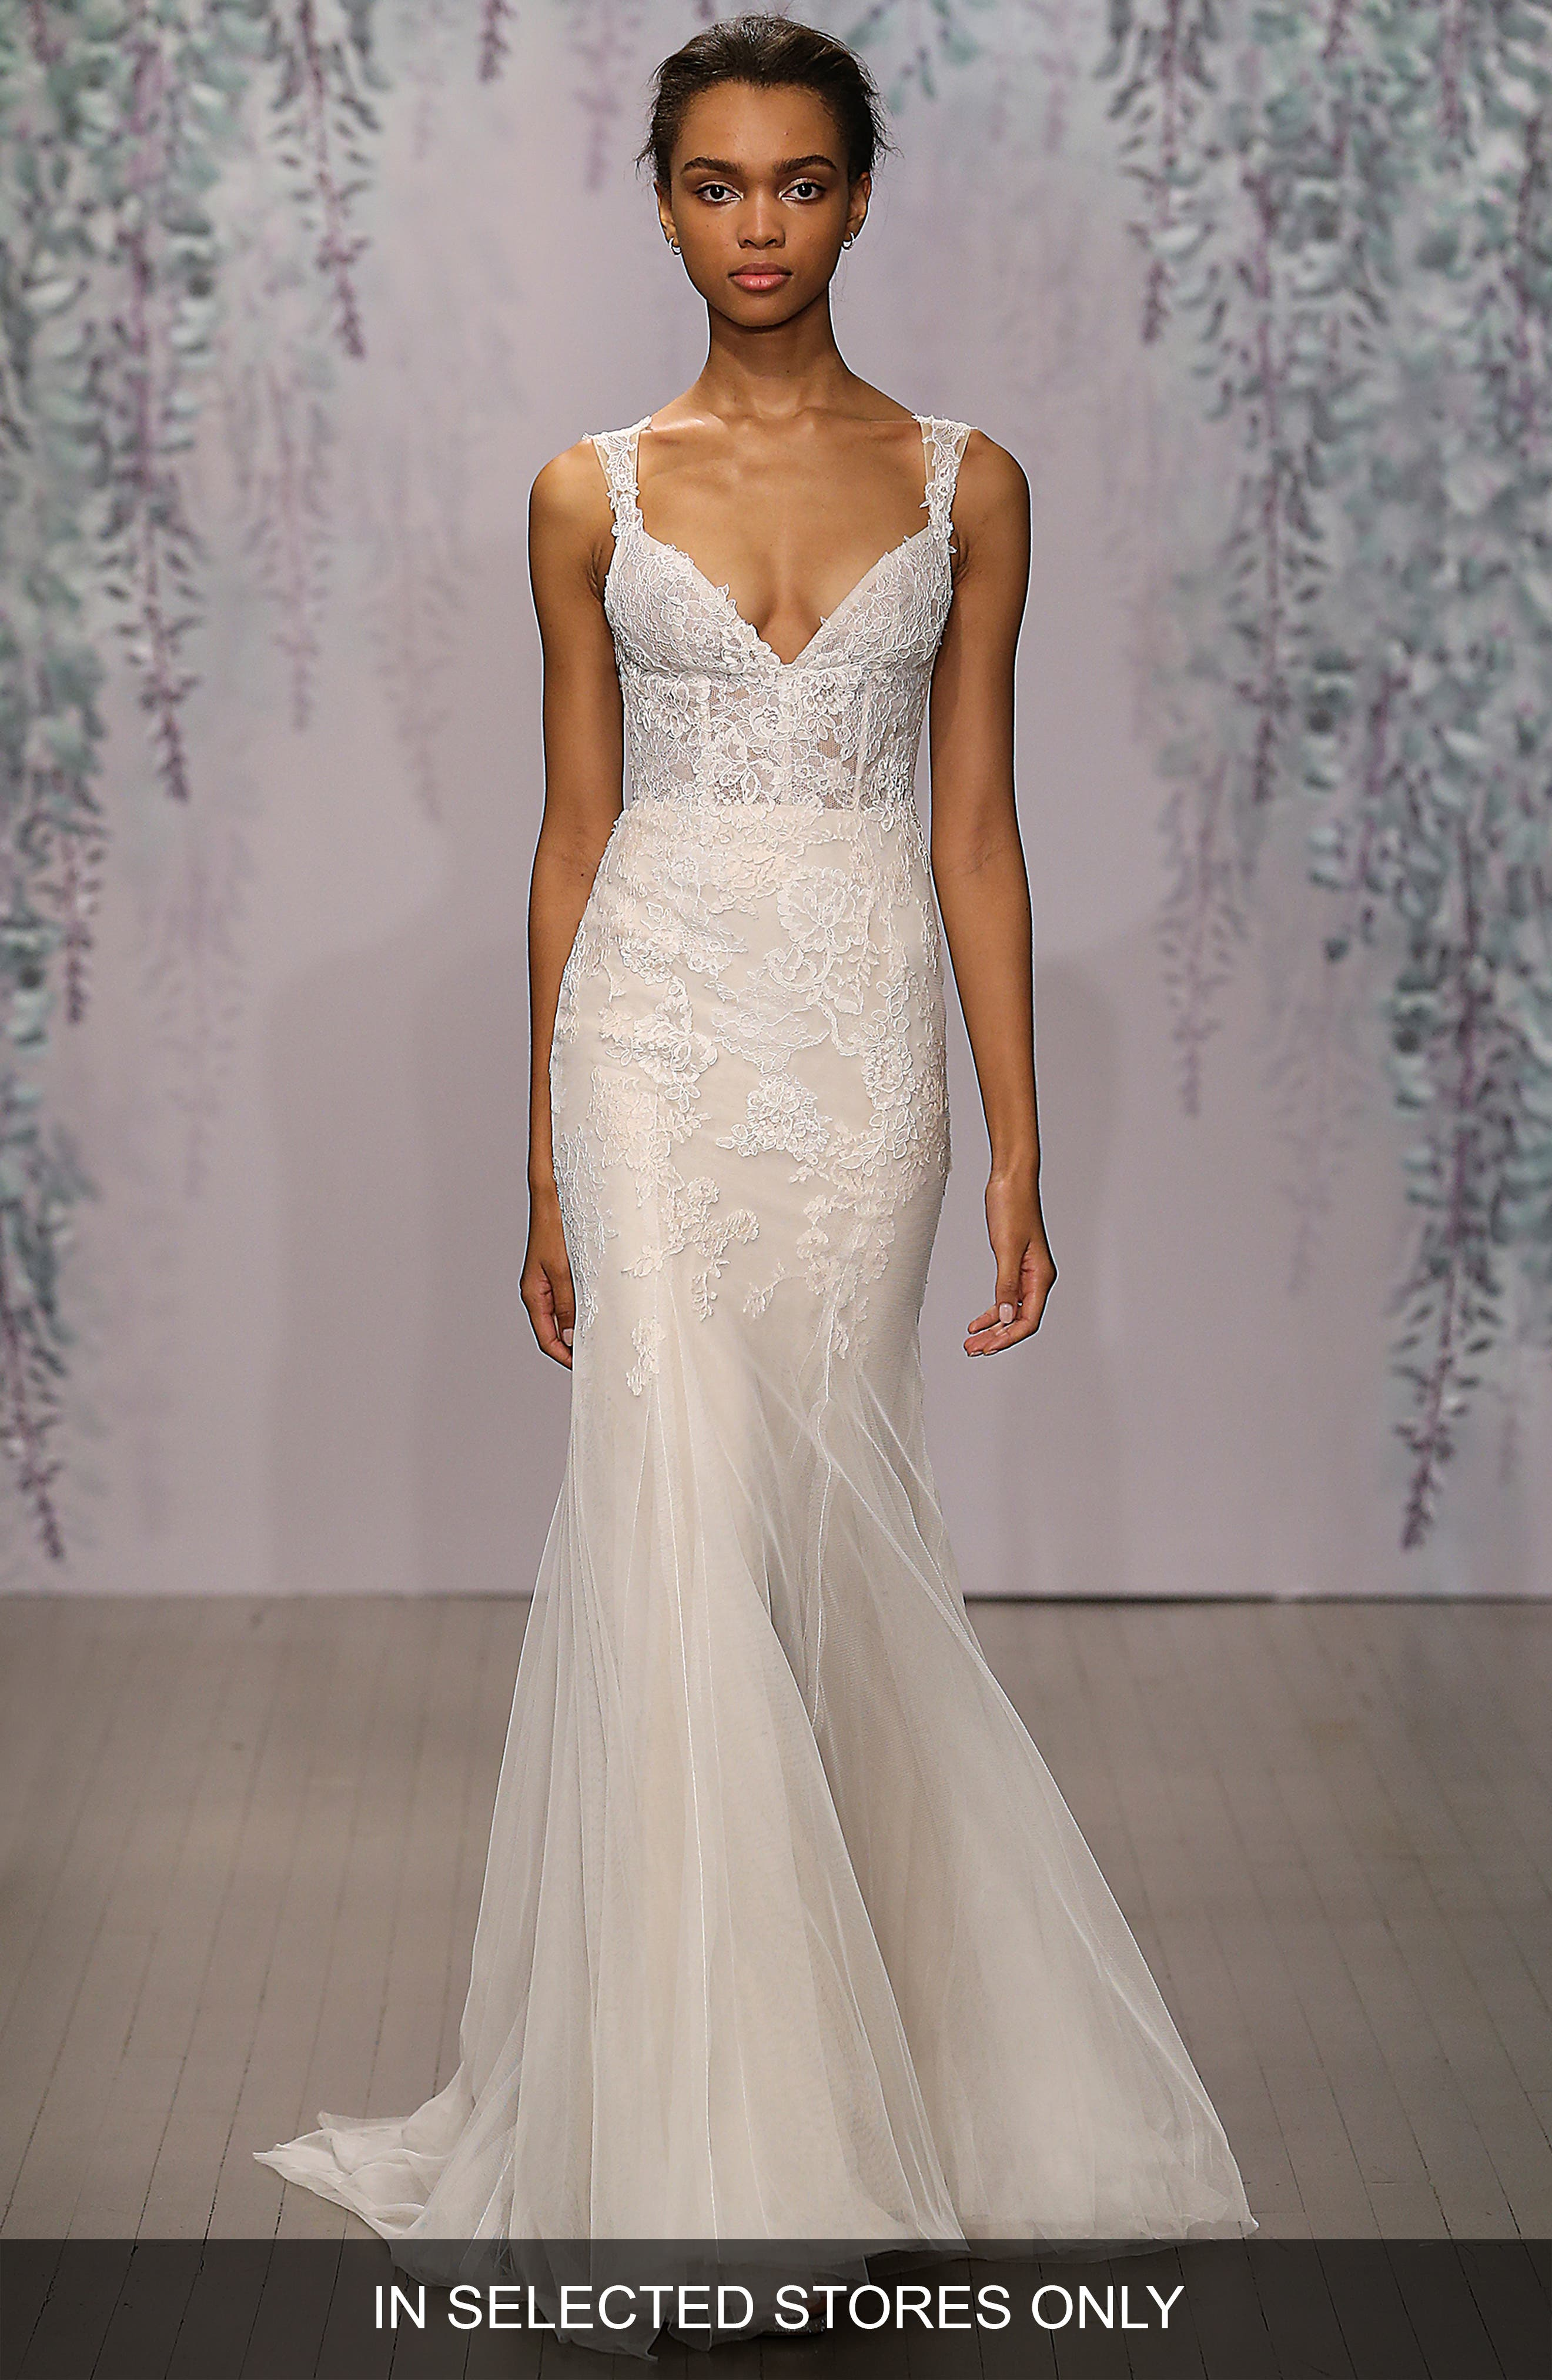 Monique Lhuillier 'Dulce' V-Neck Lace Tulle Sheath Dress (In Stores Only)